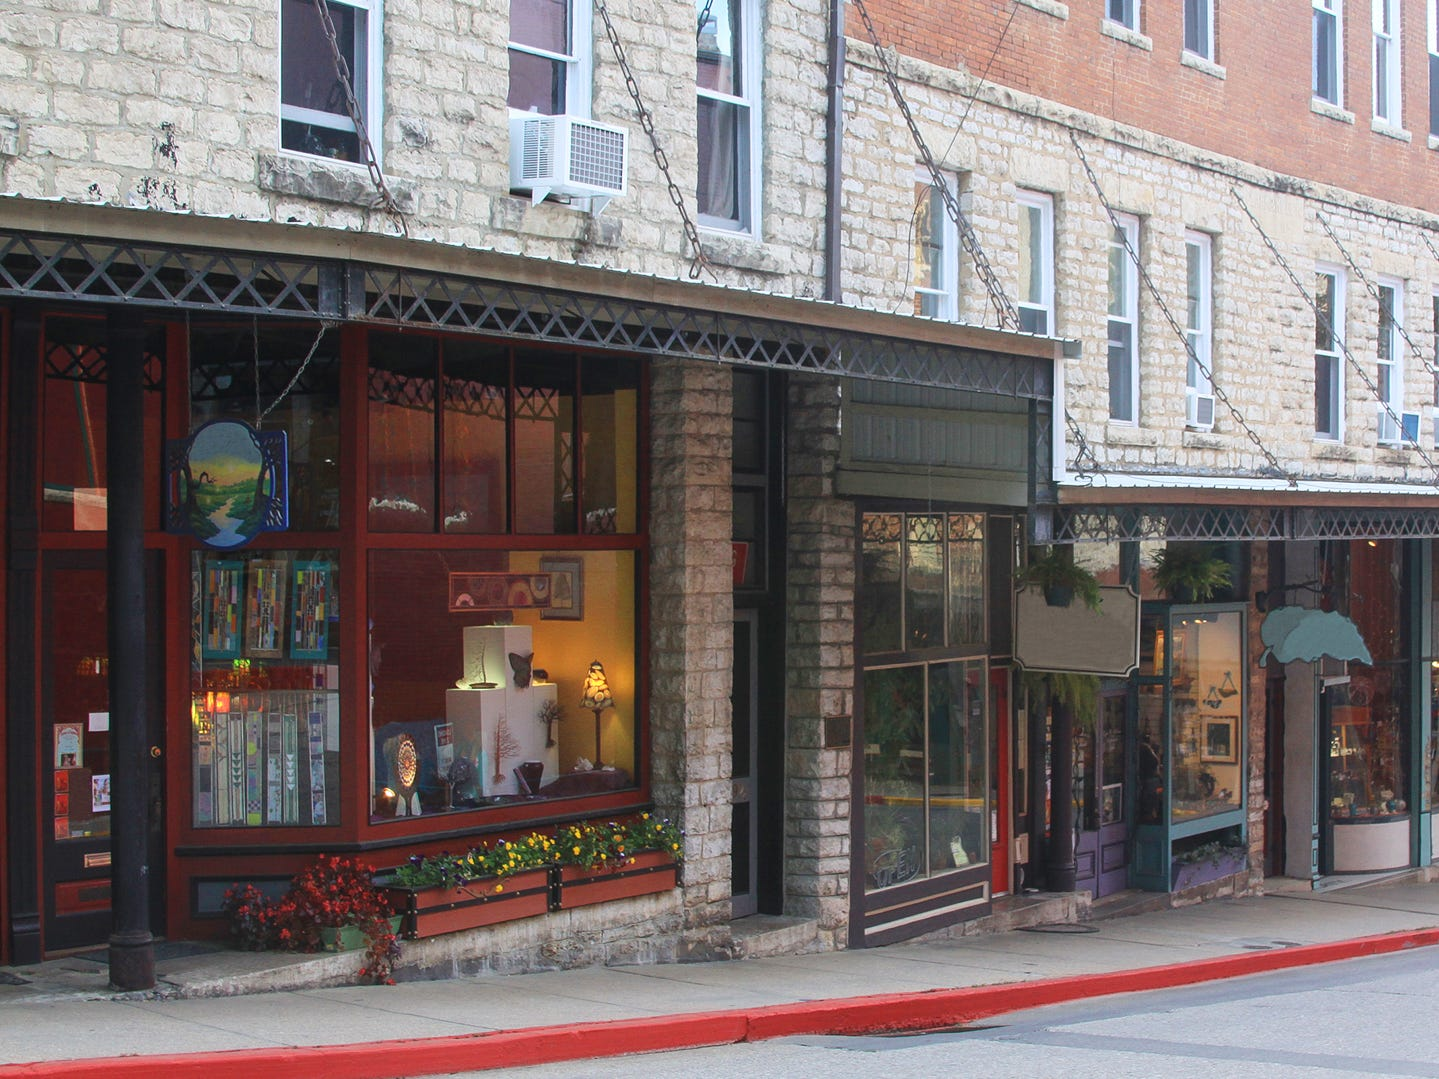 Arkansas: The northwest Arkansas town of Eureka Springs is one of America's bucket list destinations and an idyllic getaway any time of the year. In the summer, it's an escape from the lowland heat; in the fall, it's one of the best places to see autumn foliage; and in the winter, the town resembles a Christmas wonderland. The Main Street area is a shopper's delight, and foodies can enjoy everything from ethnic cuisine to fine dining. For fans of the supernatural, be sure to take a ghost tour of the historic town. Haunted Eureka Springs Walking Tour: $13.50 per person.